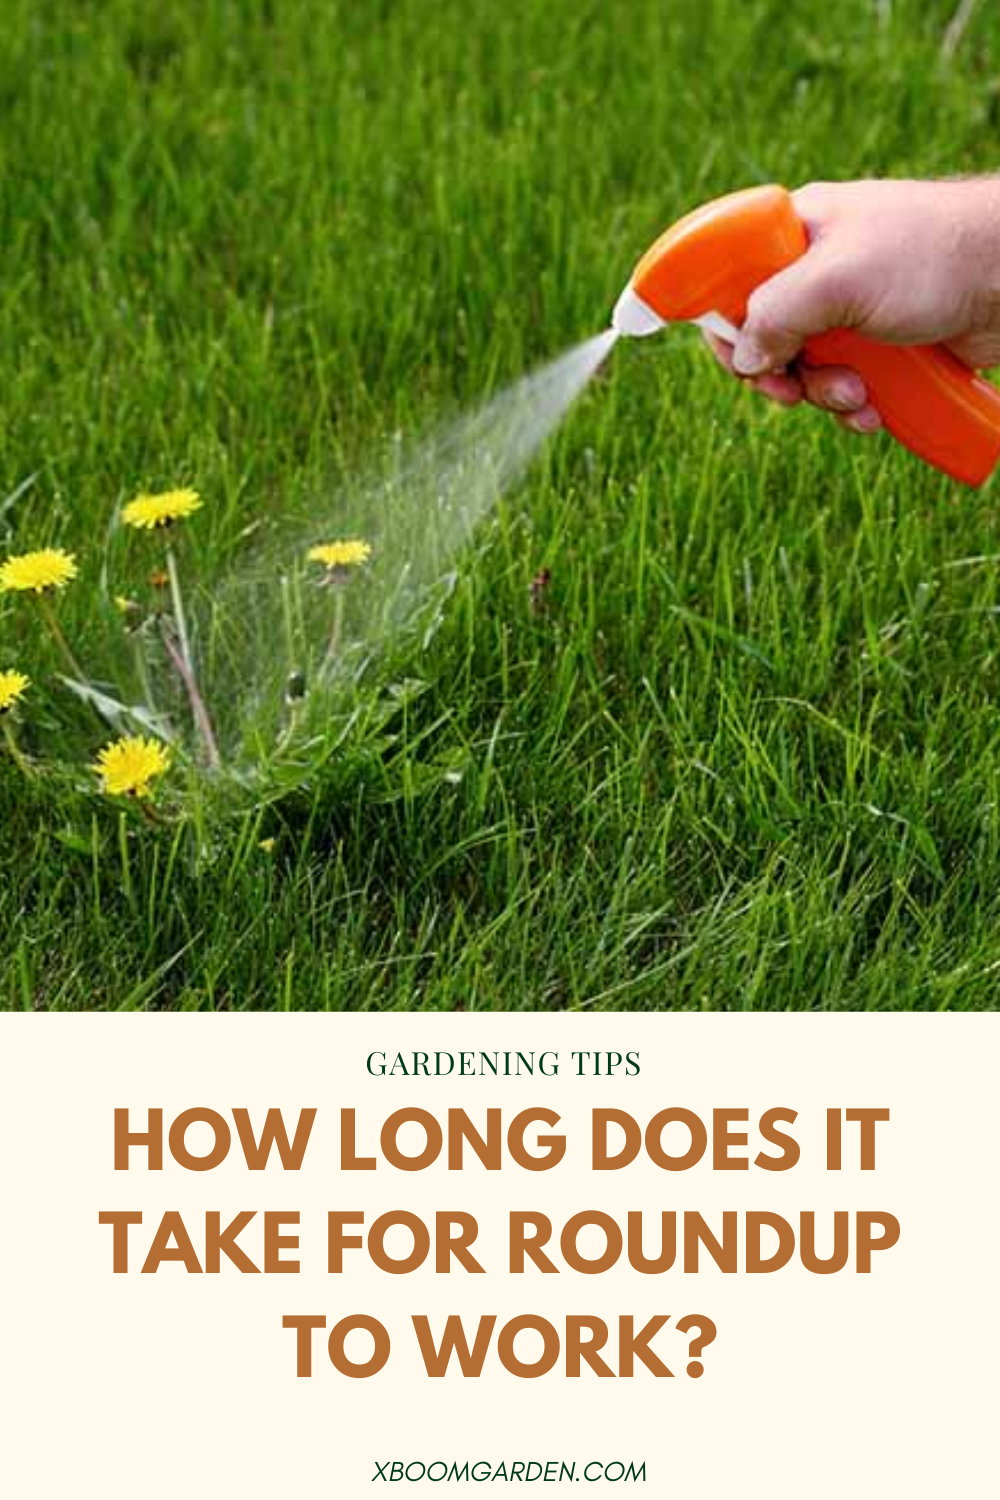 How Long Does It Take For Roundup To Work In 2020 Gardening Tips Take That Roundup